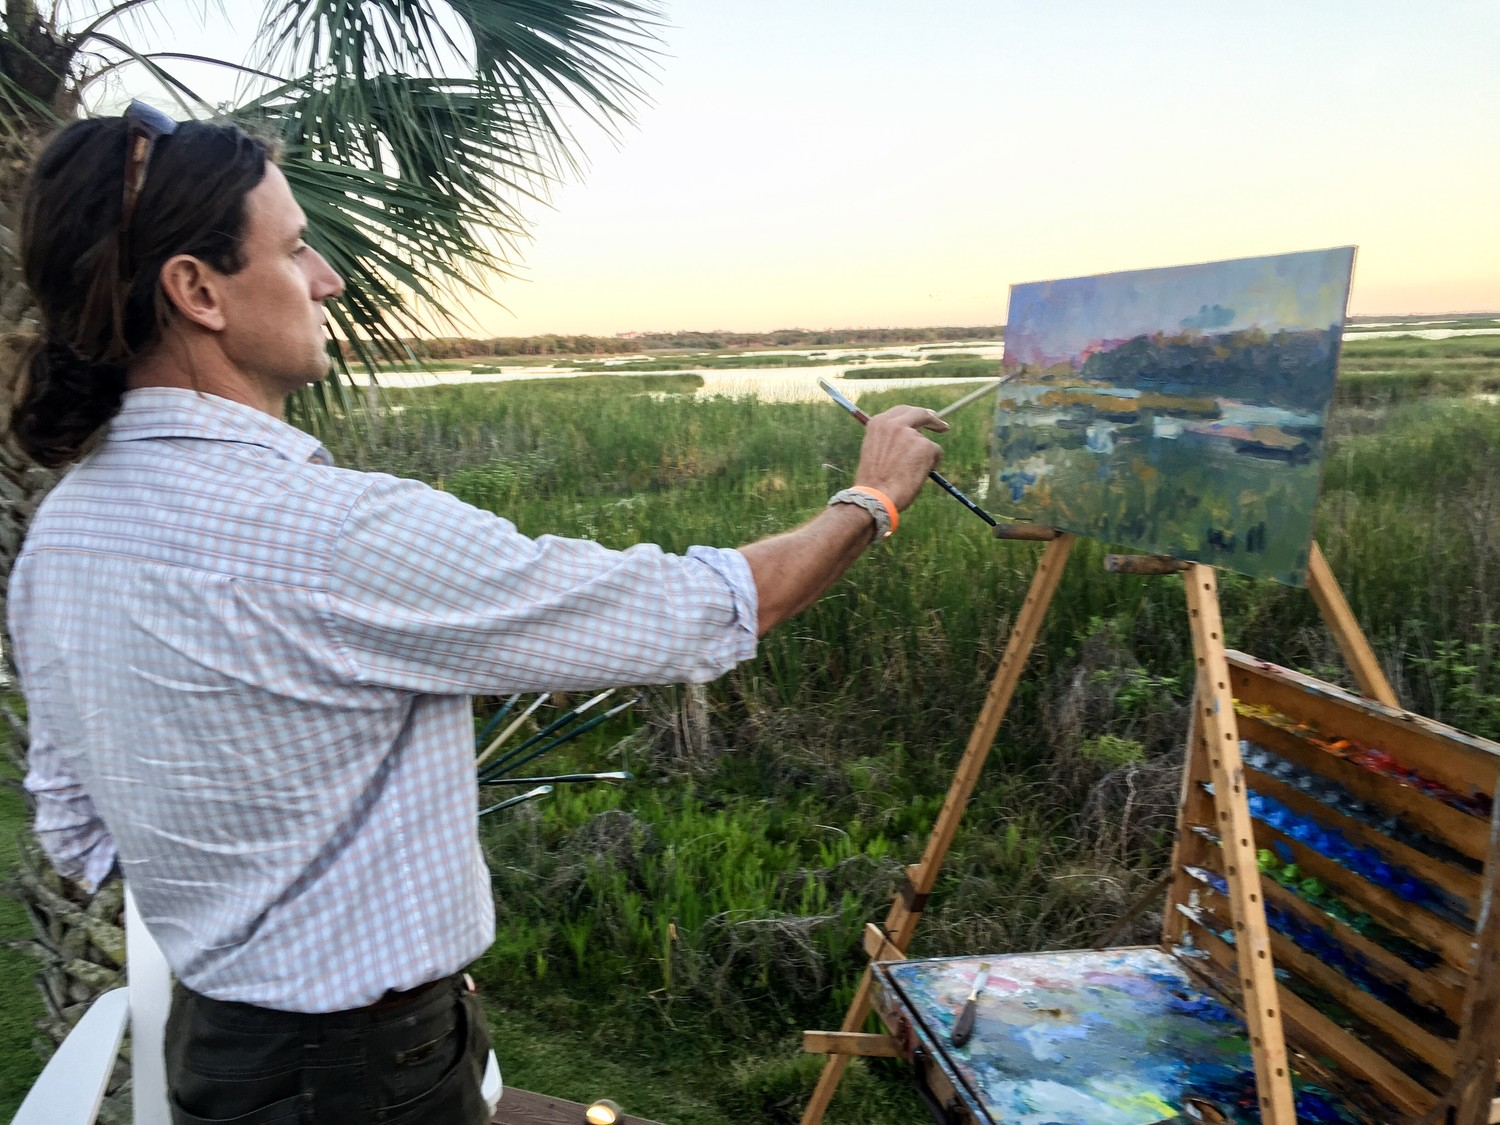 Eugene Quinn paints a scene at the Guana Preserve.